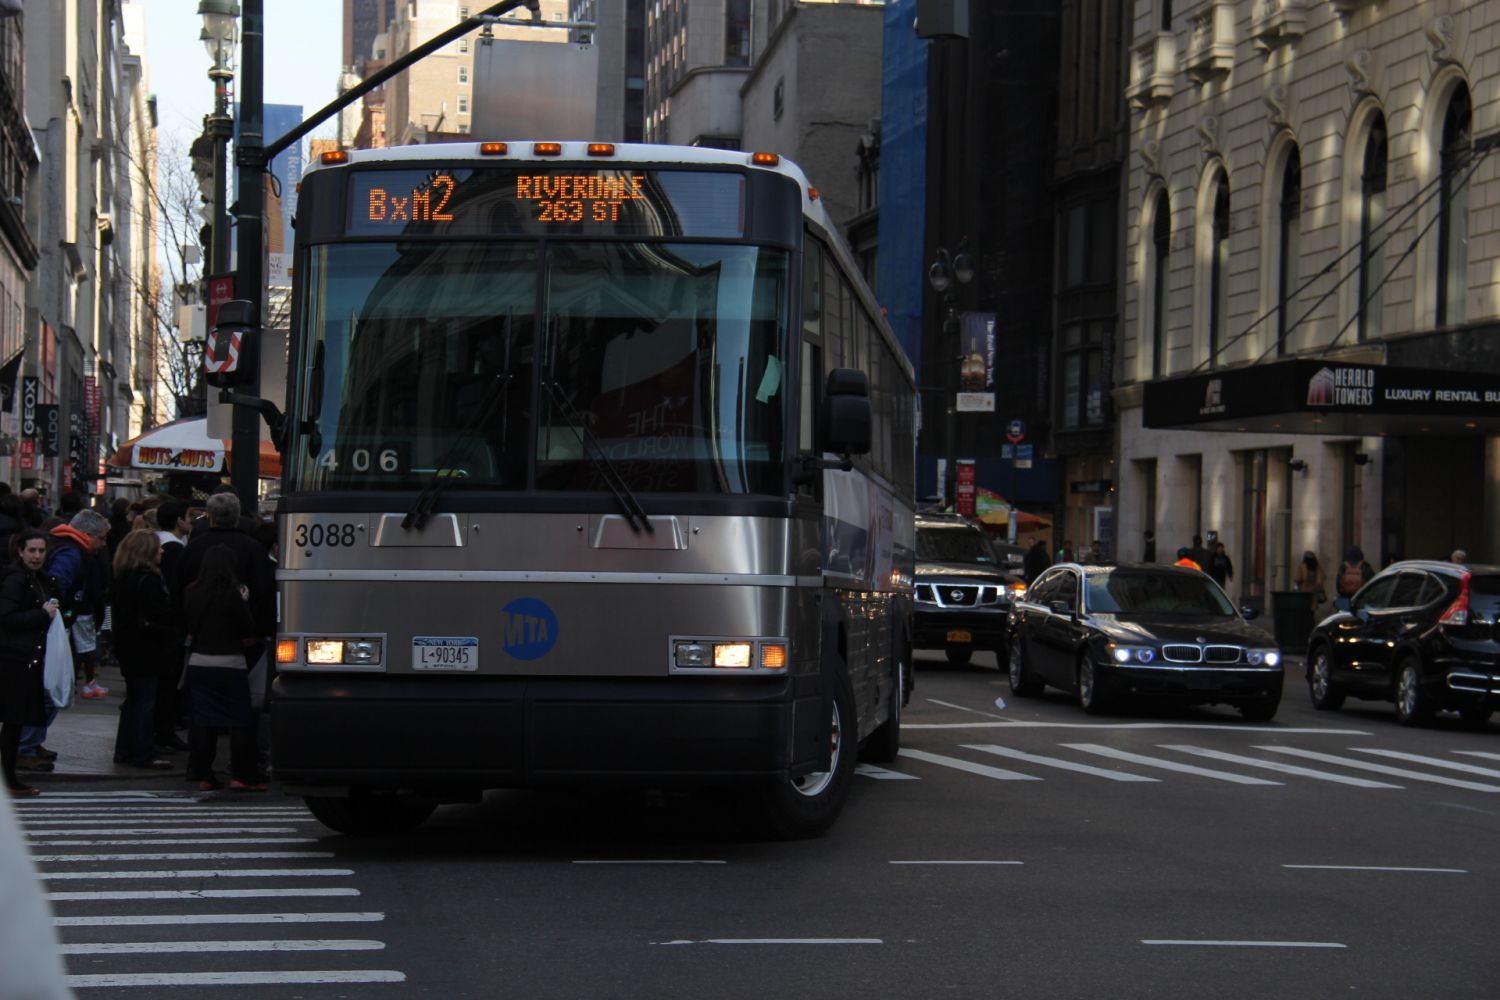 D4500CL BxM2 at 34th Street and 6th Avenue